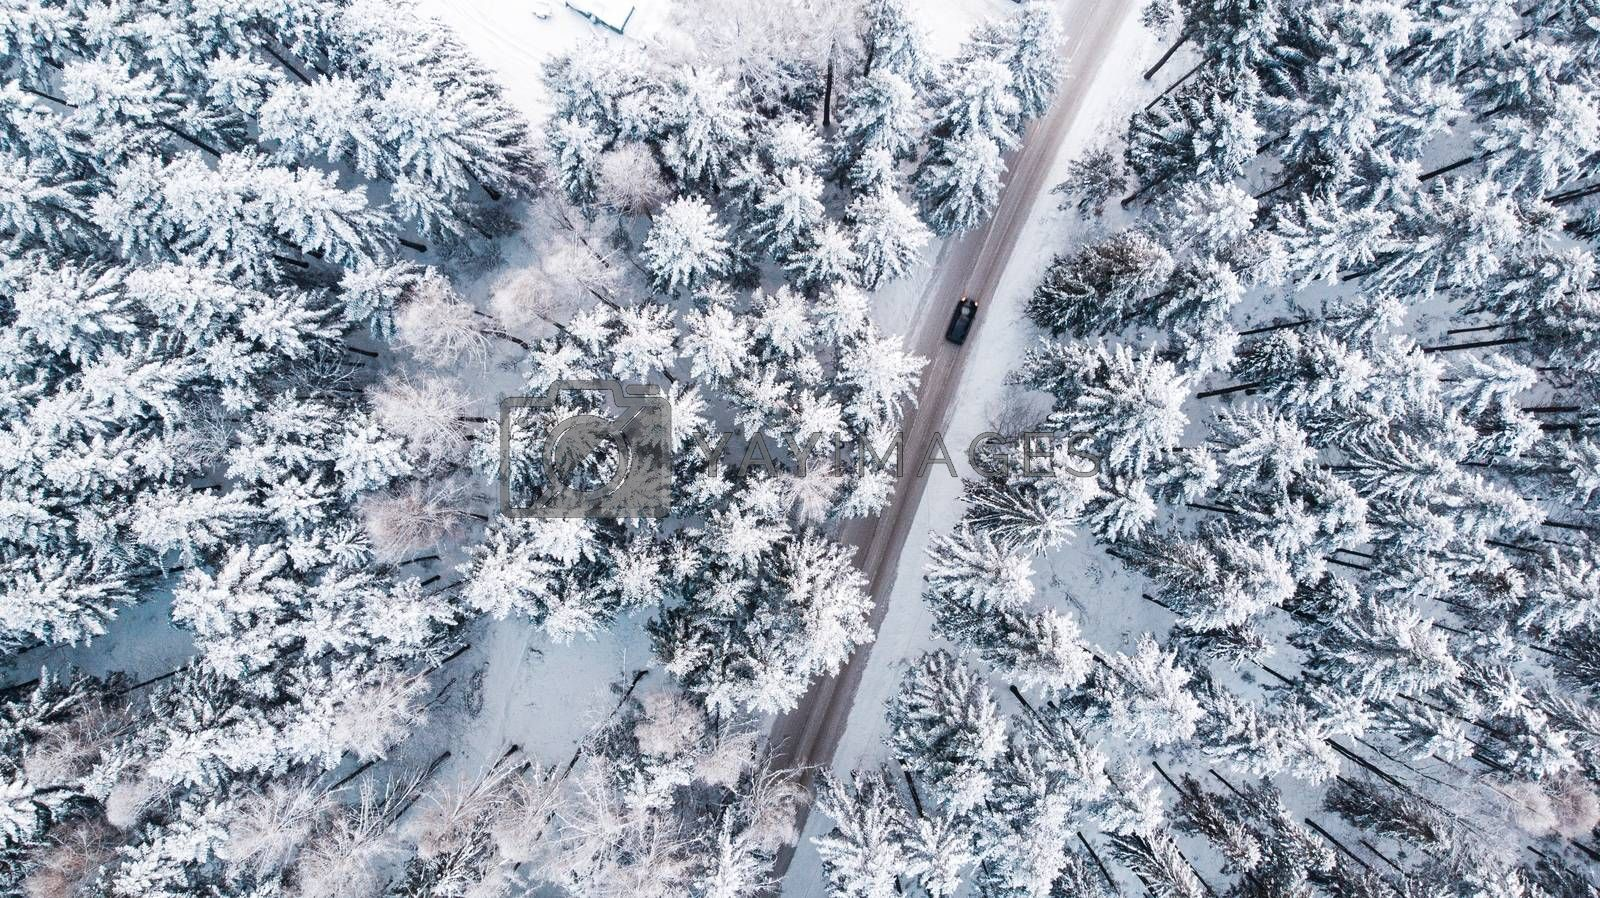 Car Drive Trough Snowy Forest in Winter Wonderland, Top Down Aer by merc67